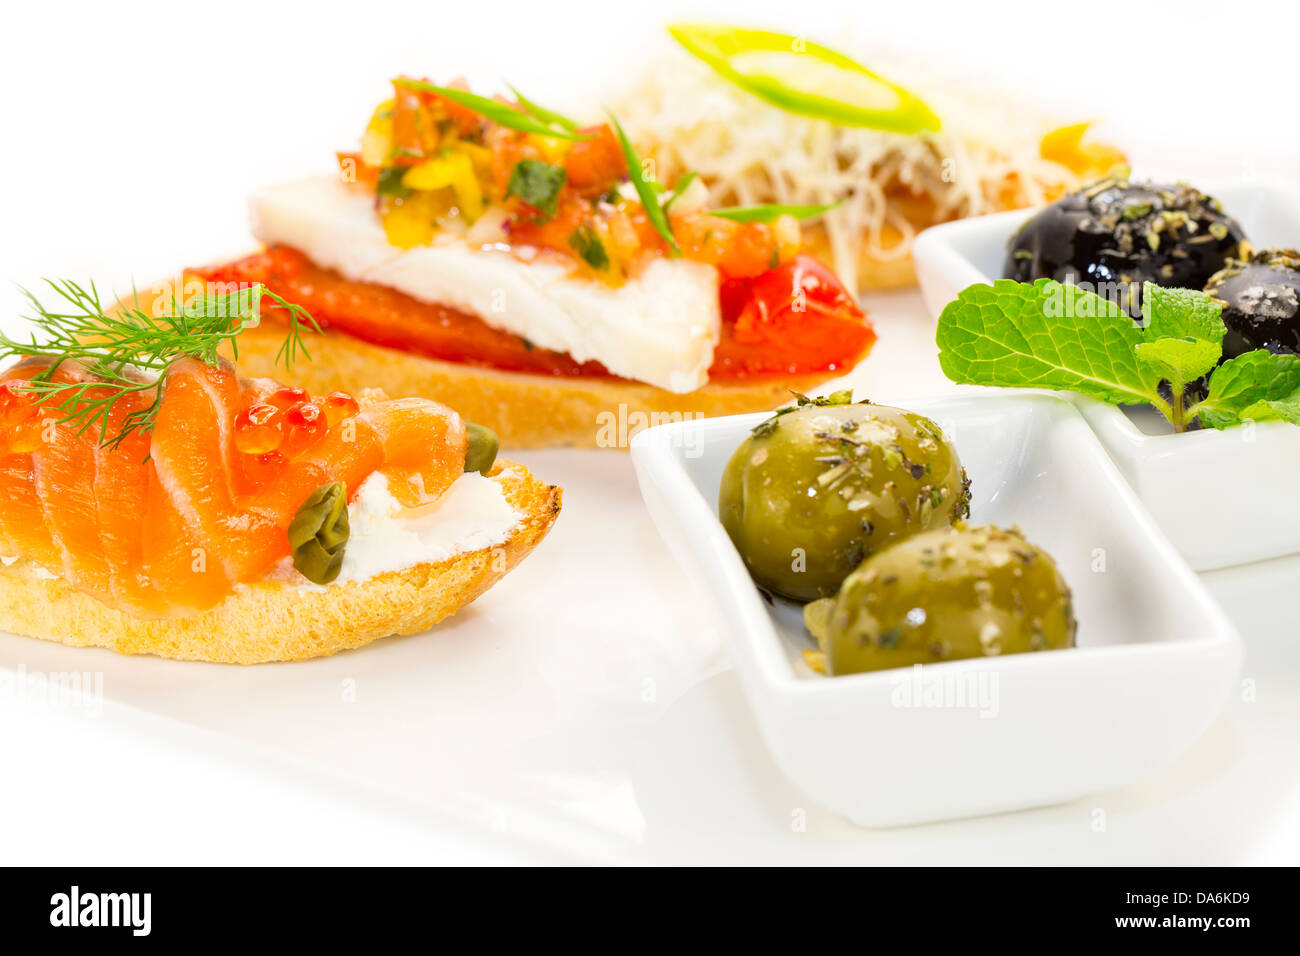 Spanish sandwiches seafood to wine and cheese vegetables - Stock Image